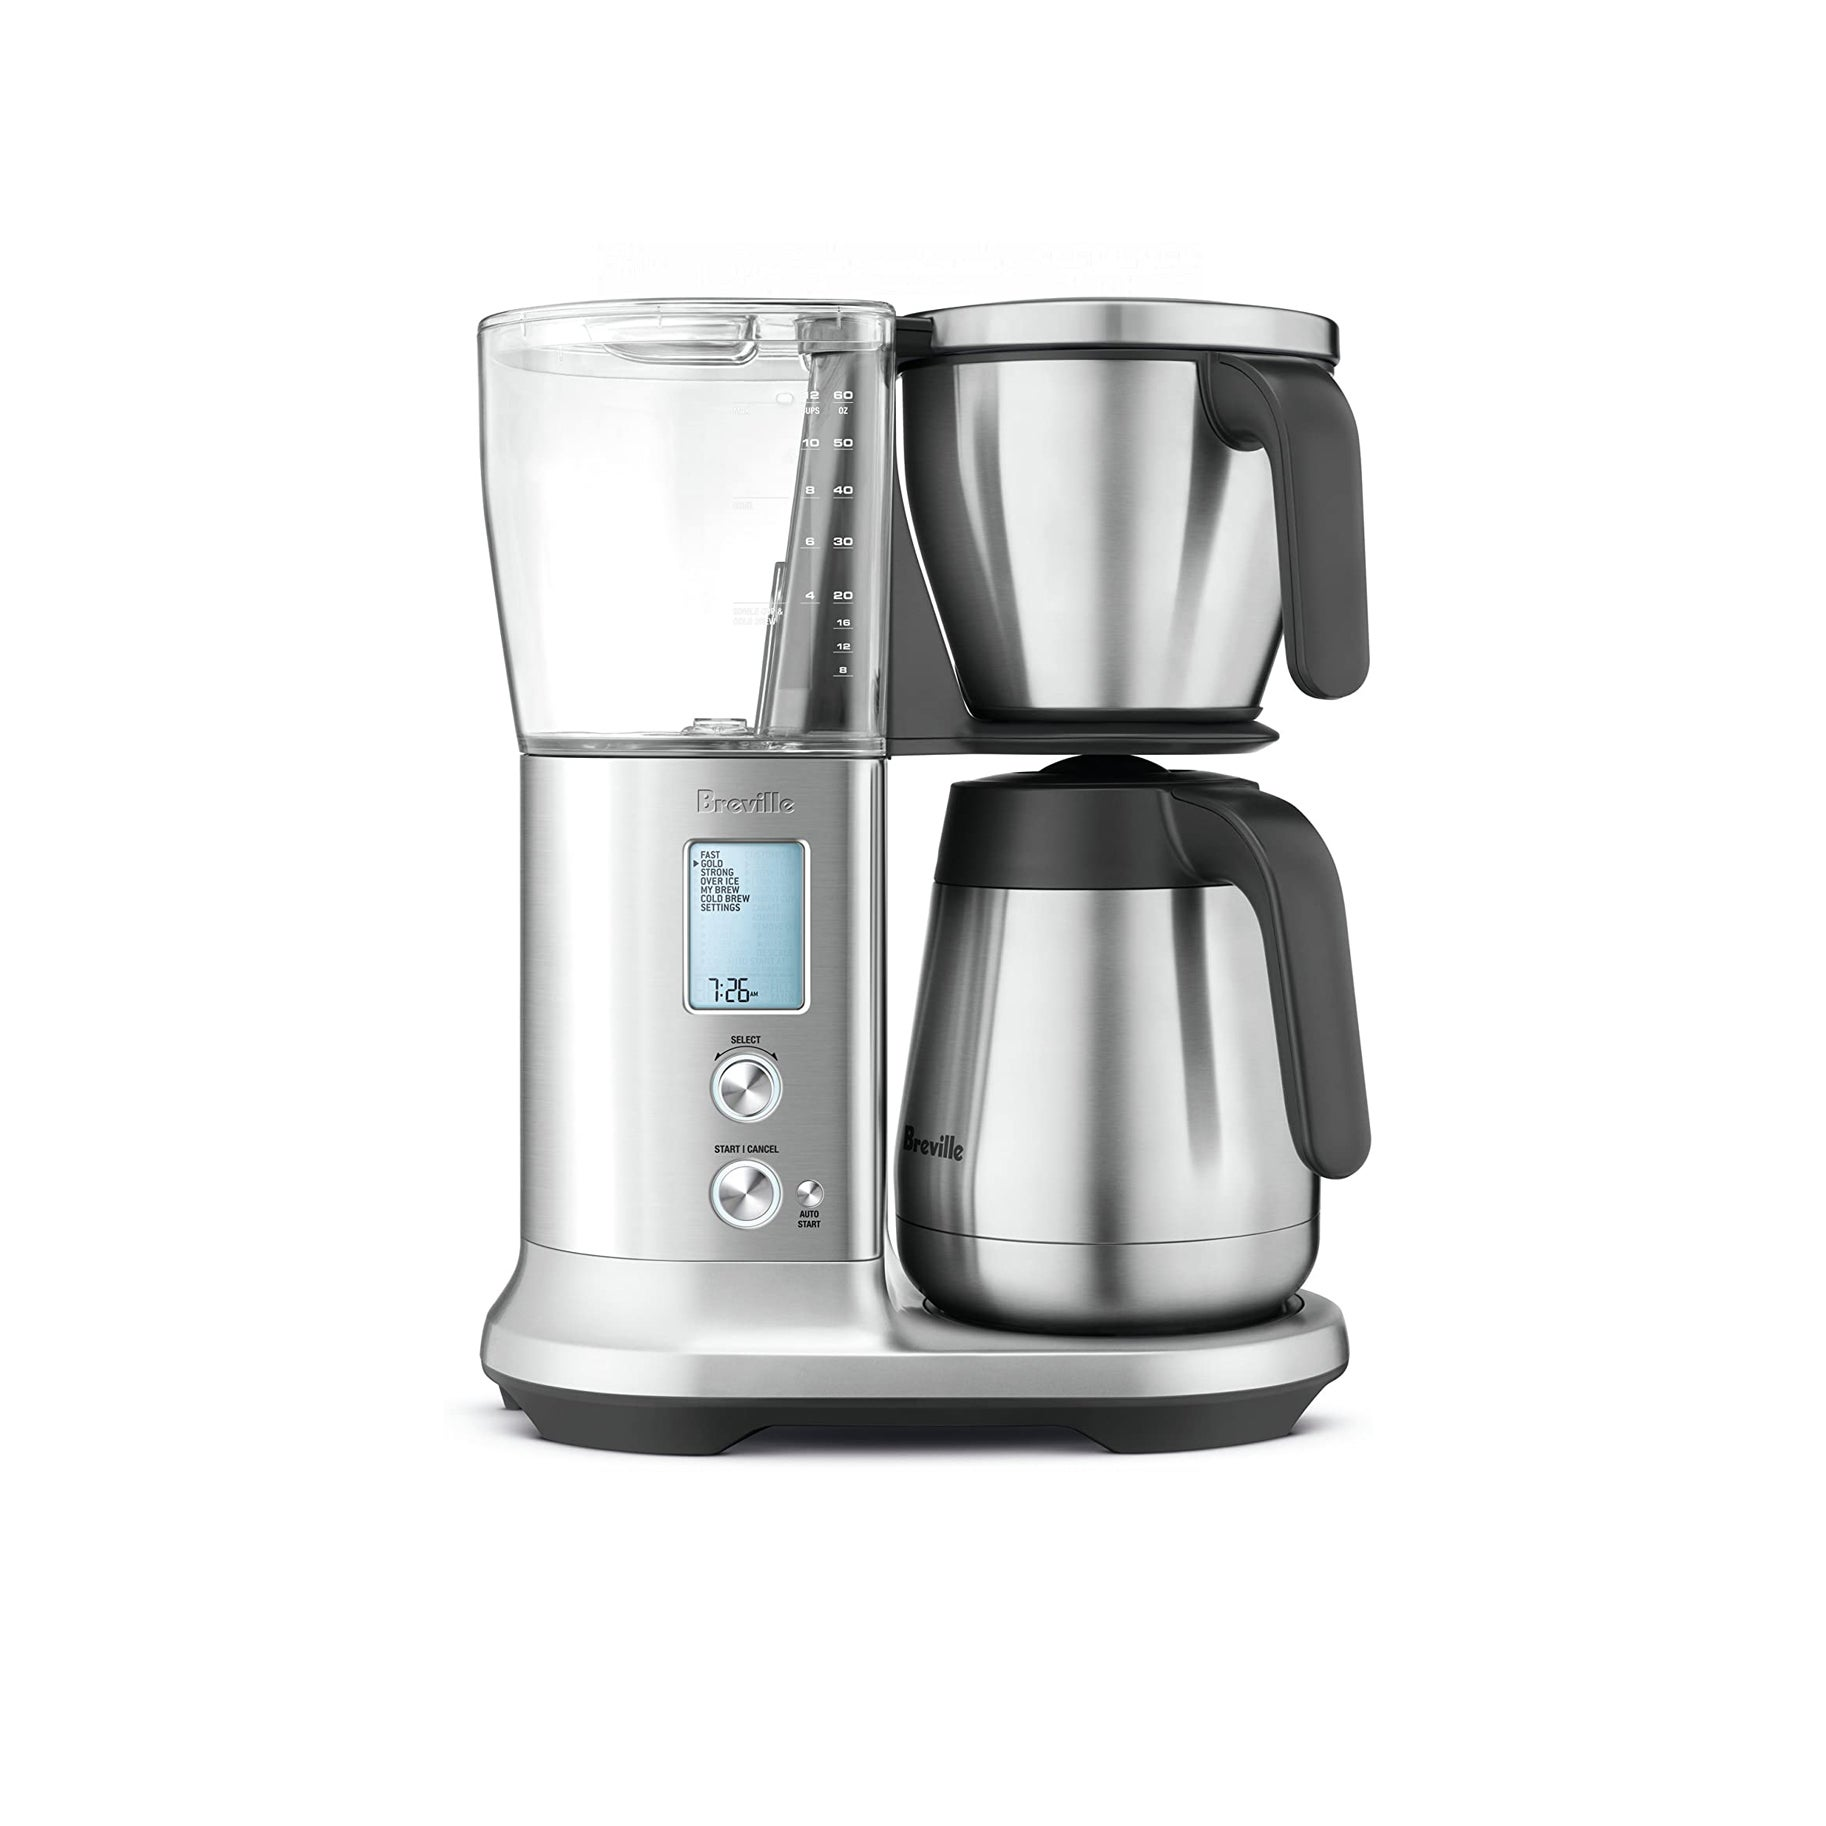 The Best Coffee Maker Option: Breville Precision Brewer Thermal